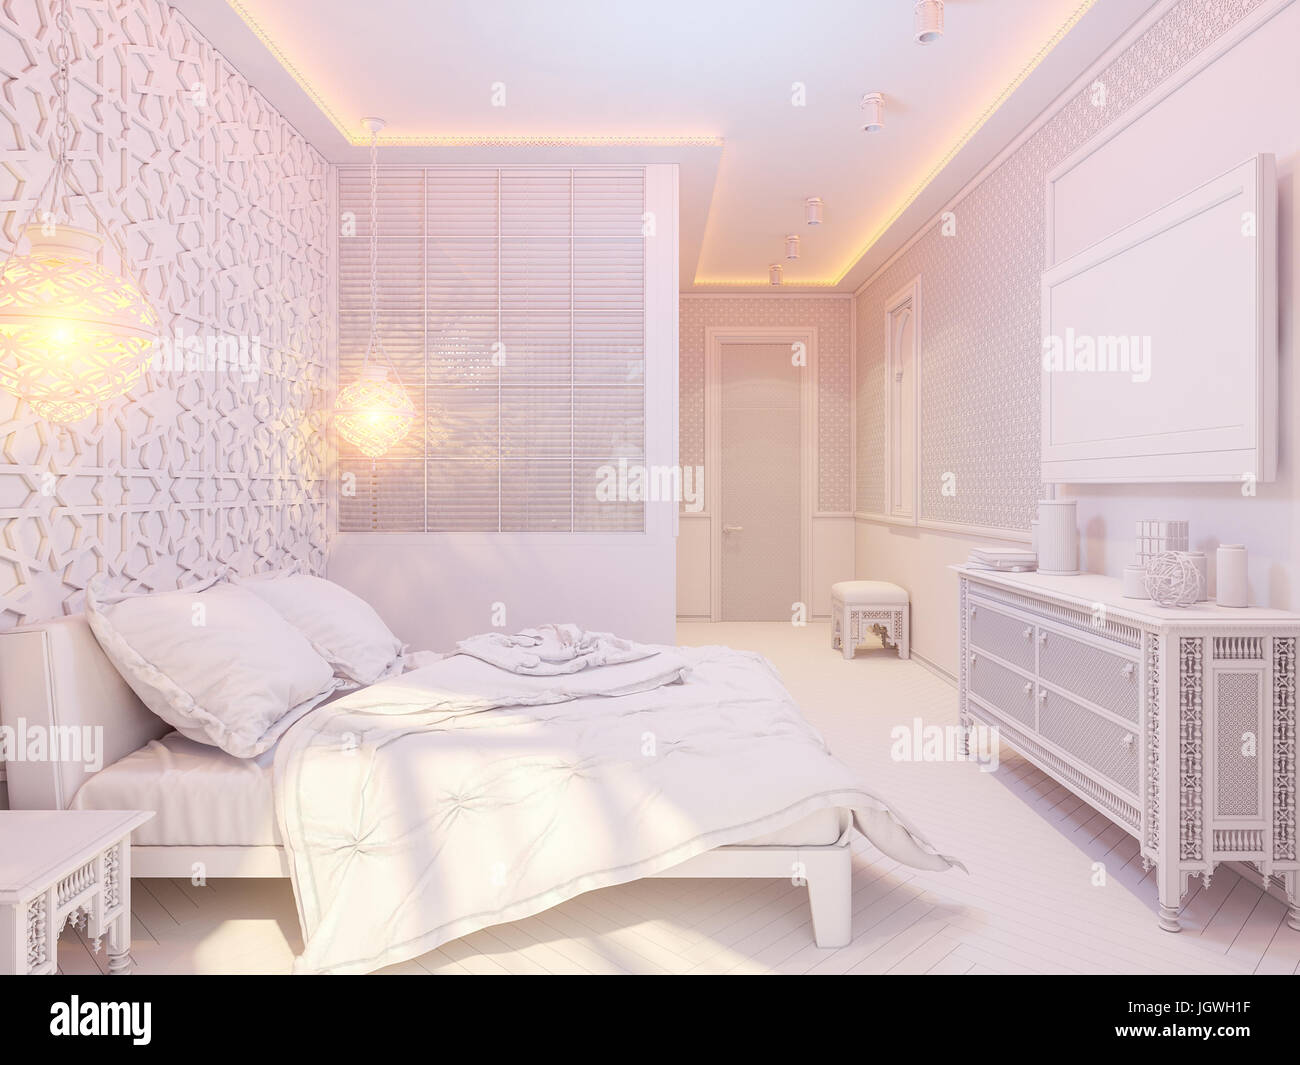 3d illustration bedroom interior design of a hotel room in a traditional islamic style deluxe room background interior view decorated with arabian mo - Traditional Hotel Interior